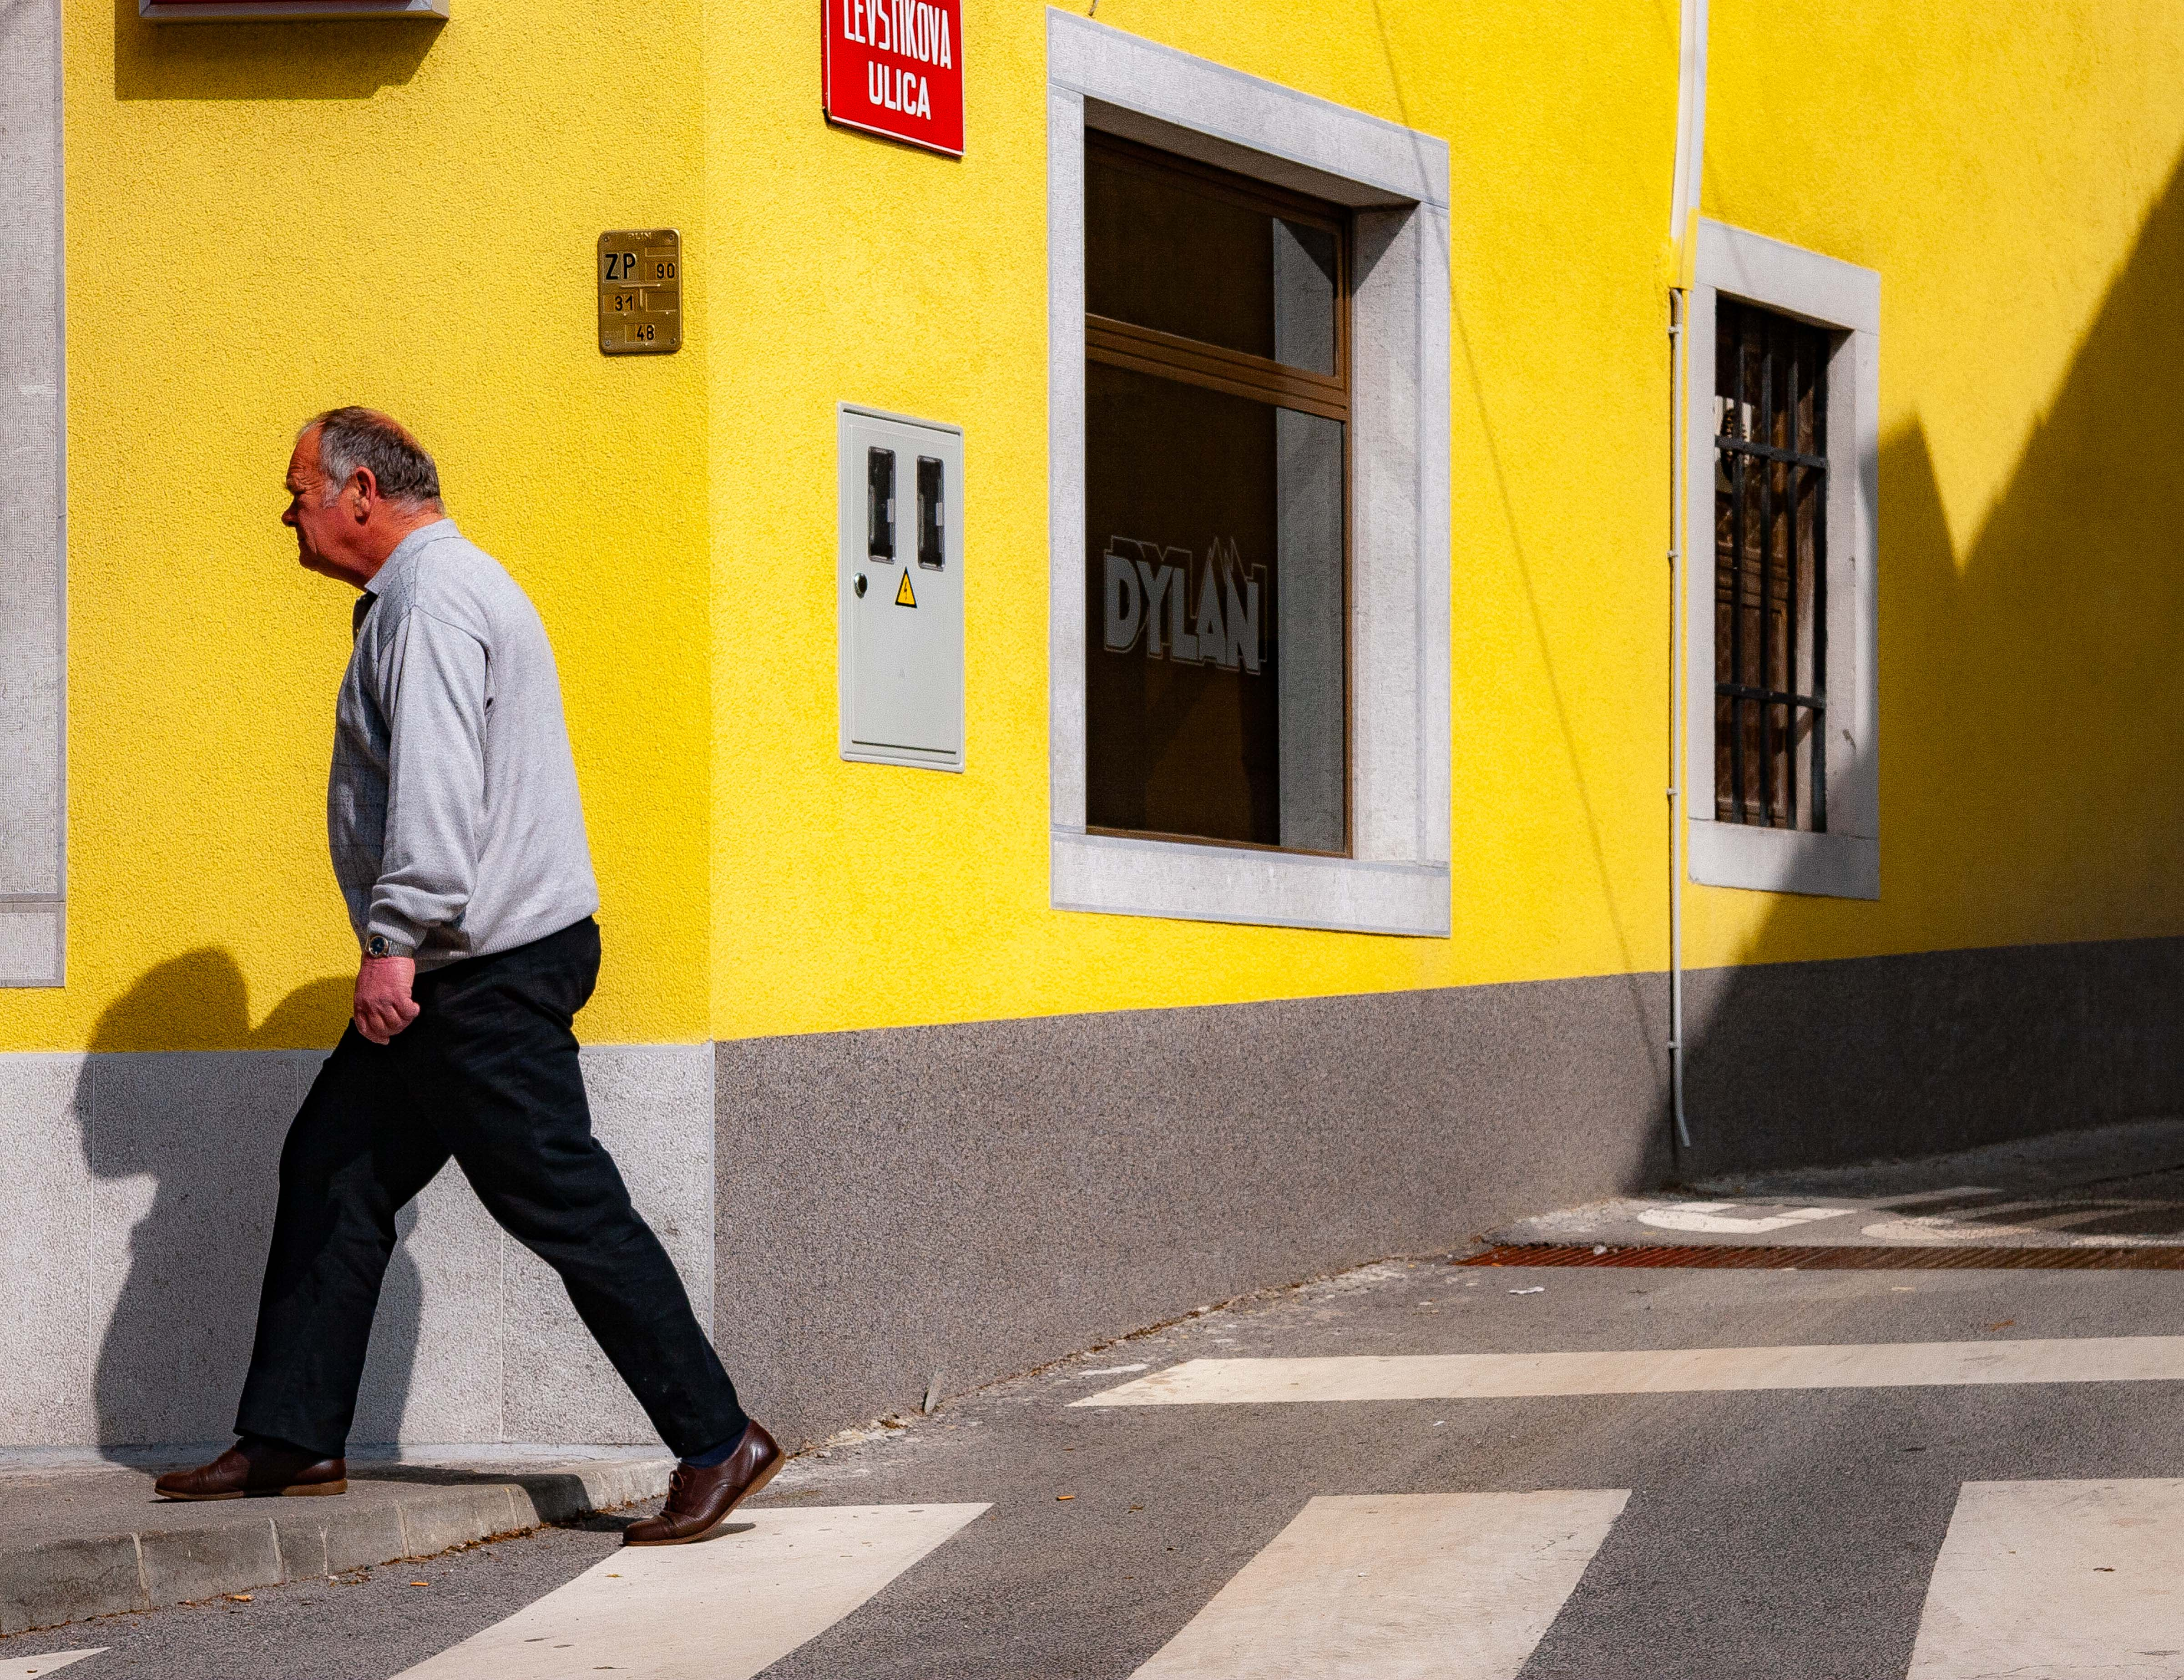 Slovenia, Sezana Prov, Man In Crosswalk, 2006, IMG 6875